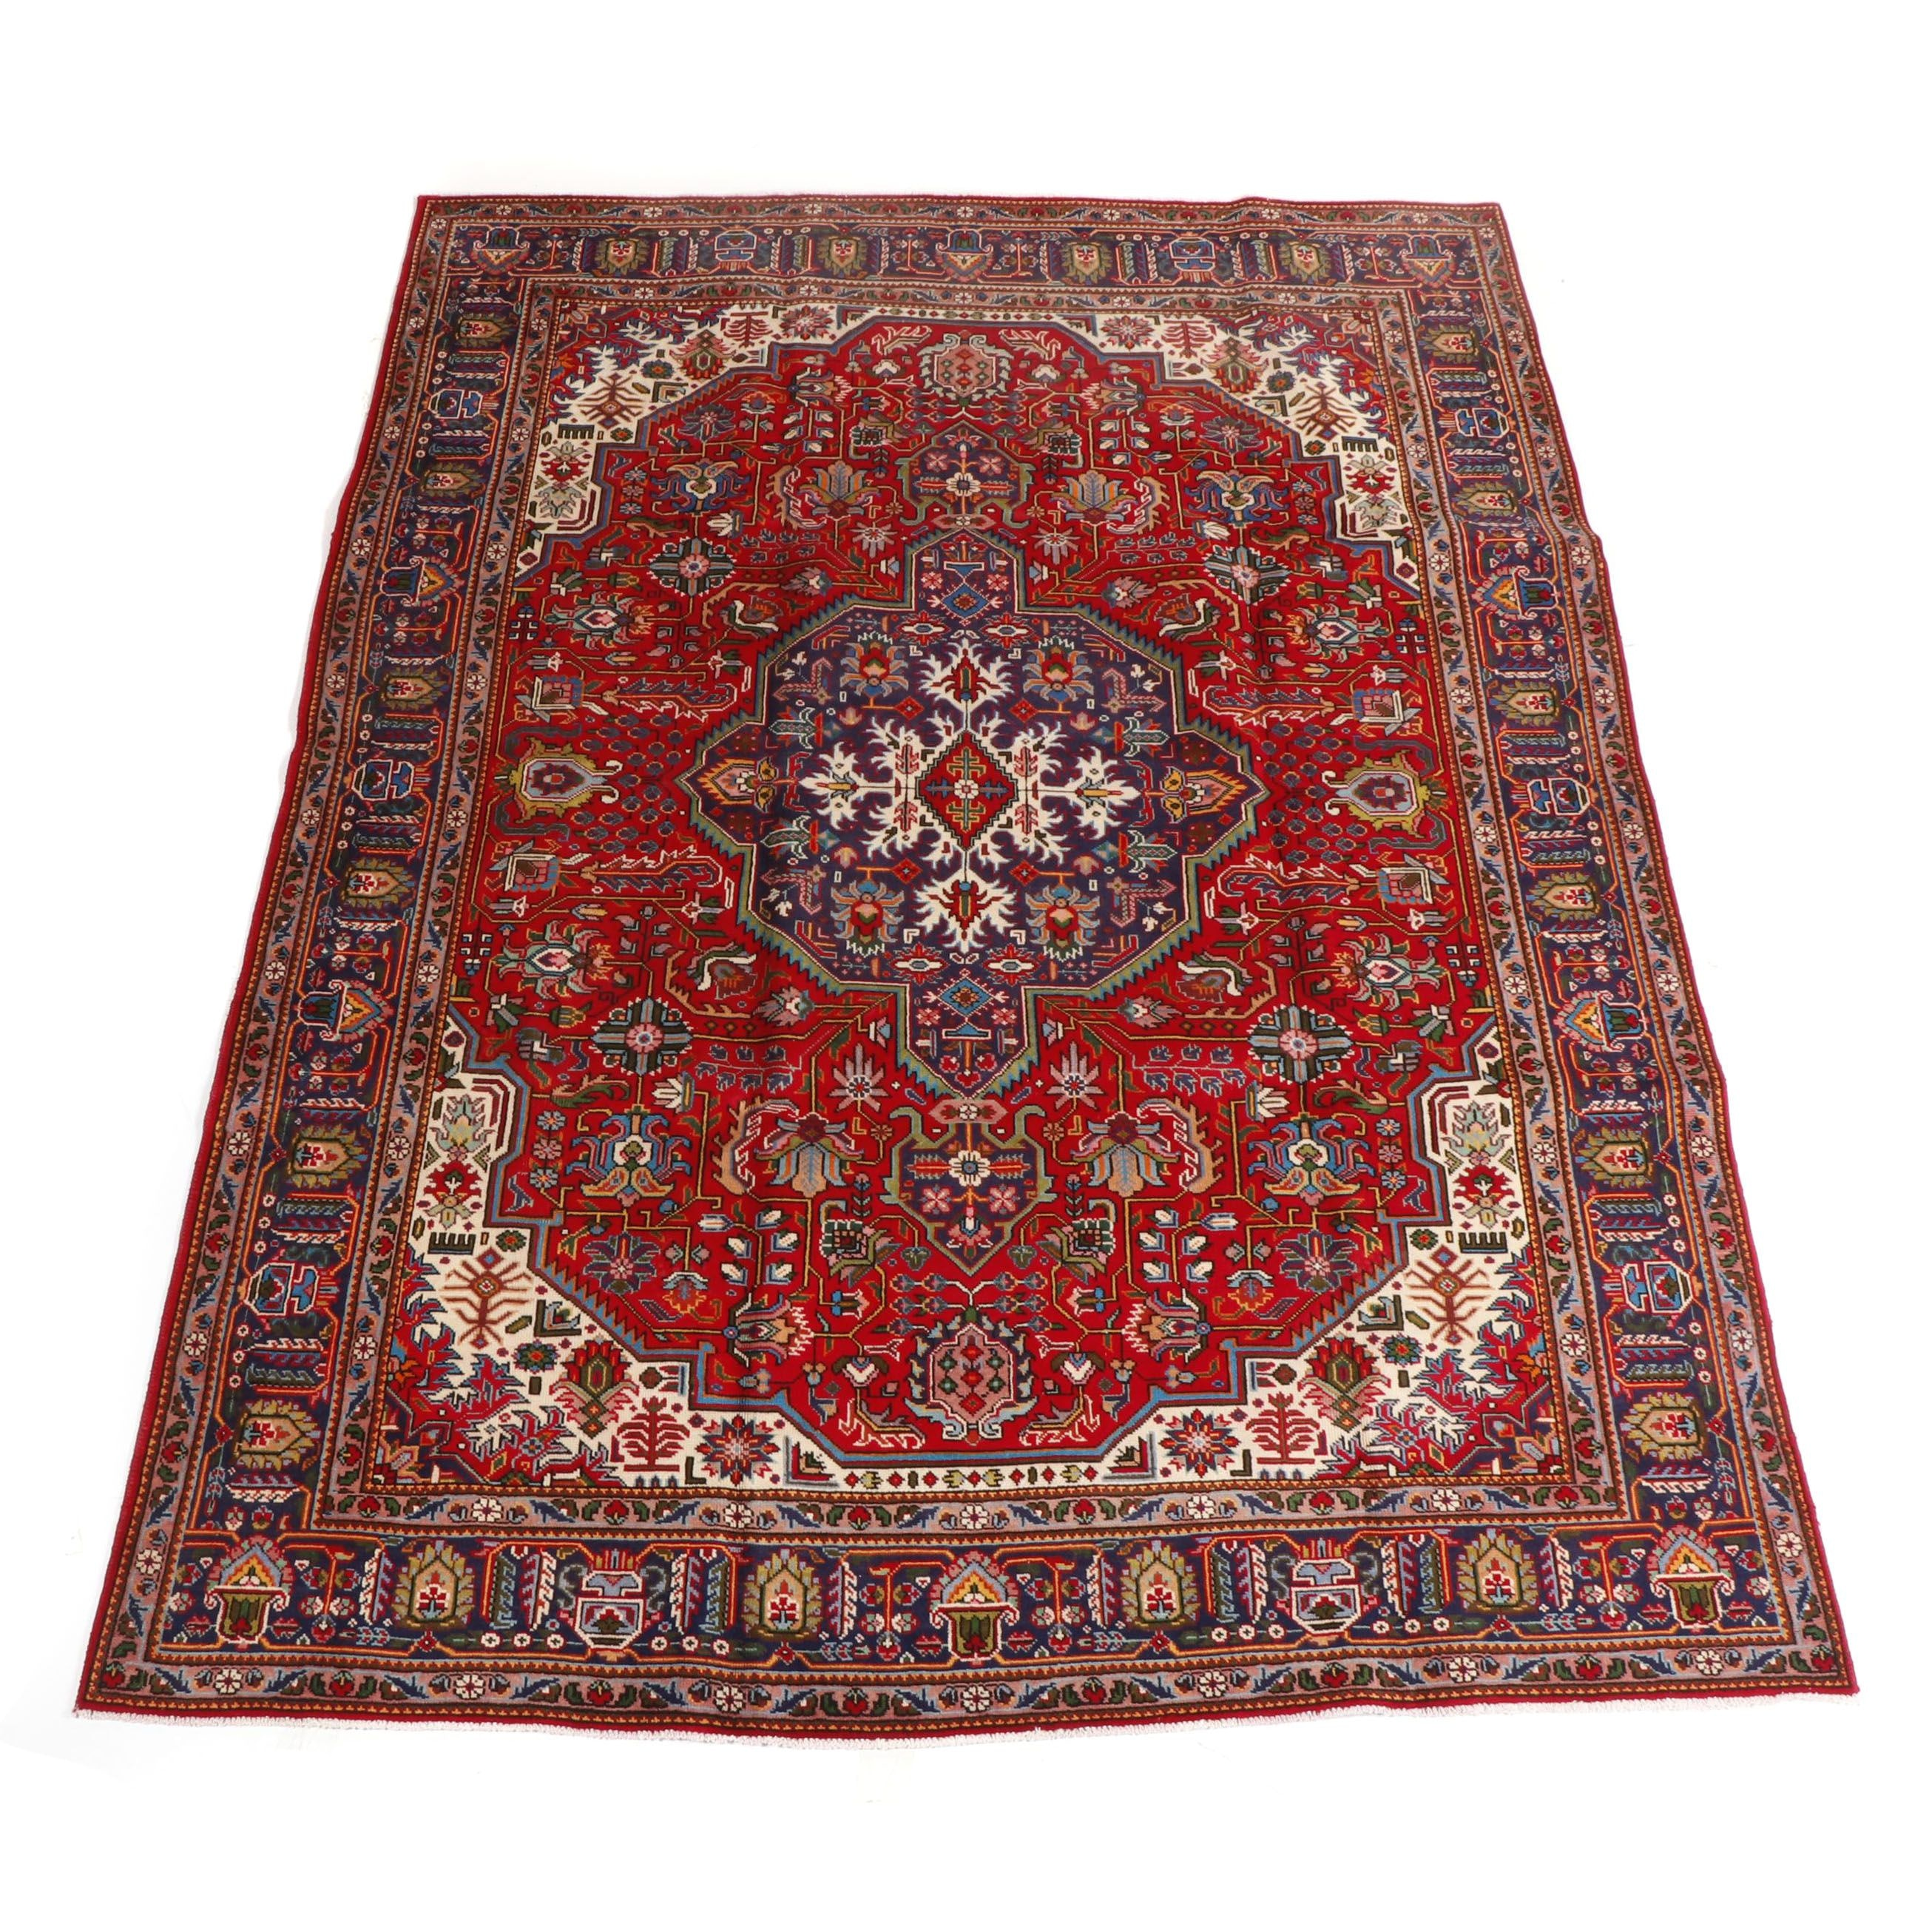 Hand-Knotted Tabriz Wool Area Rug, Contemporary